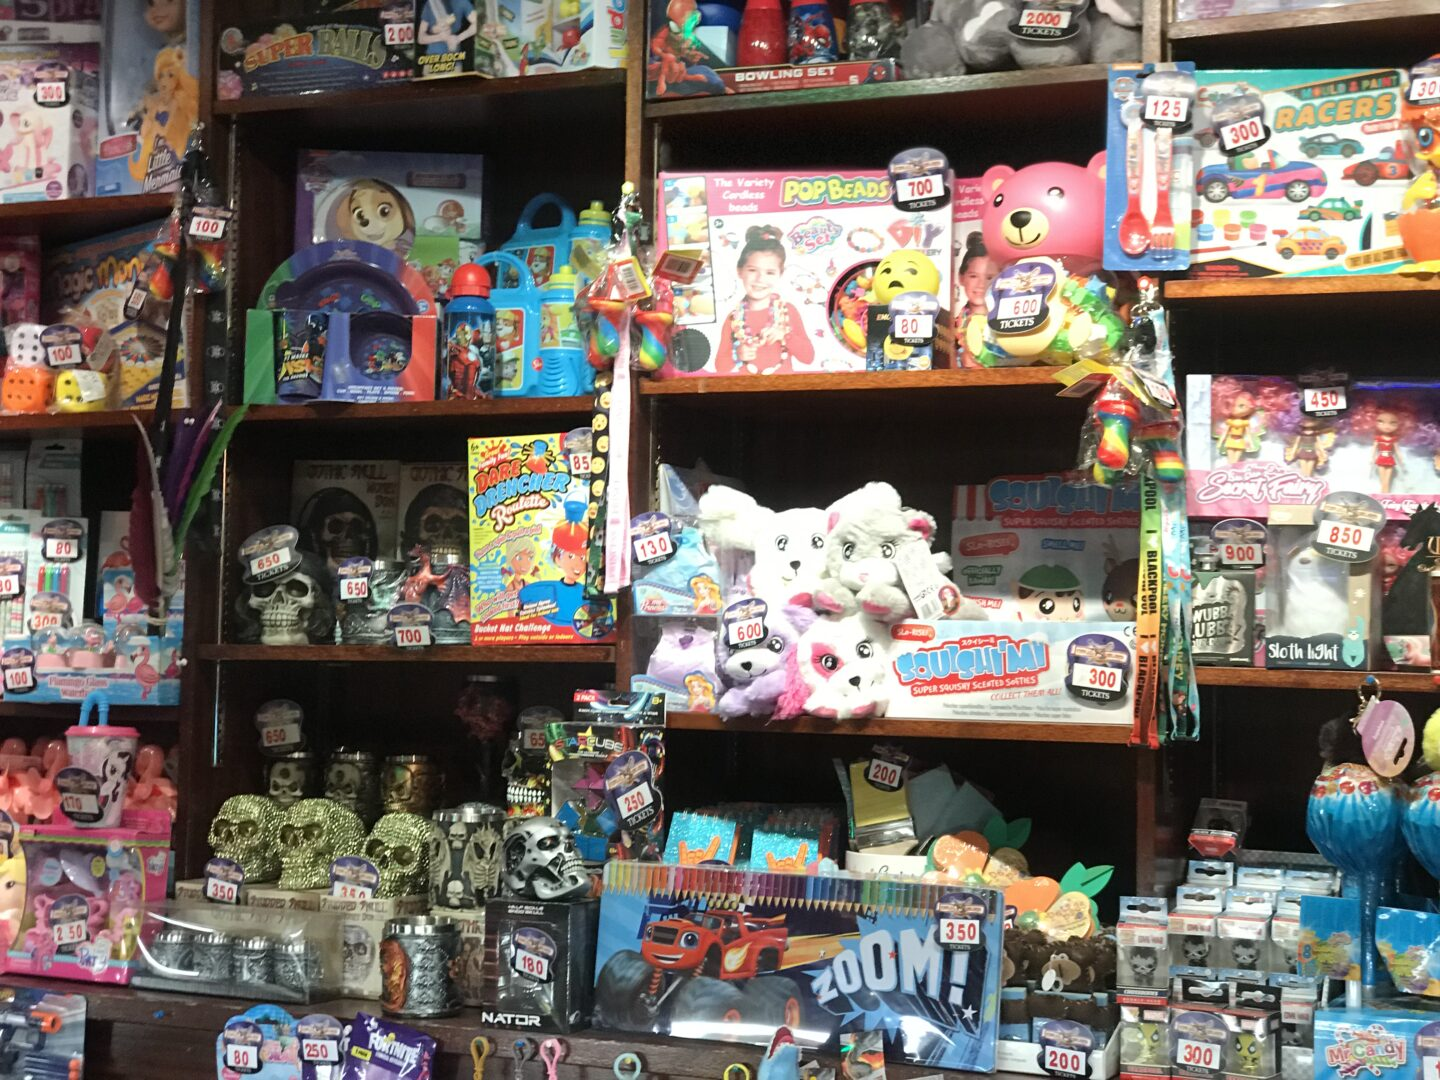 A view of the many, many toys and prizes available in the prize shop in Coral island